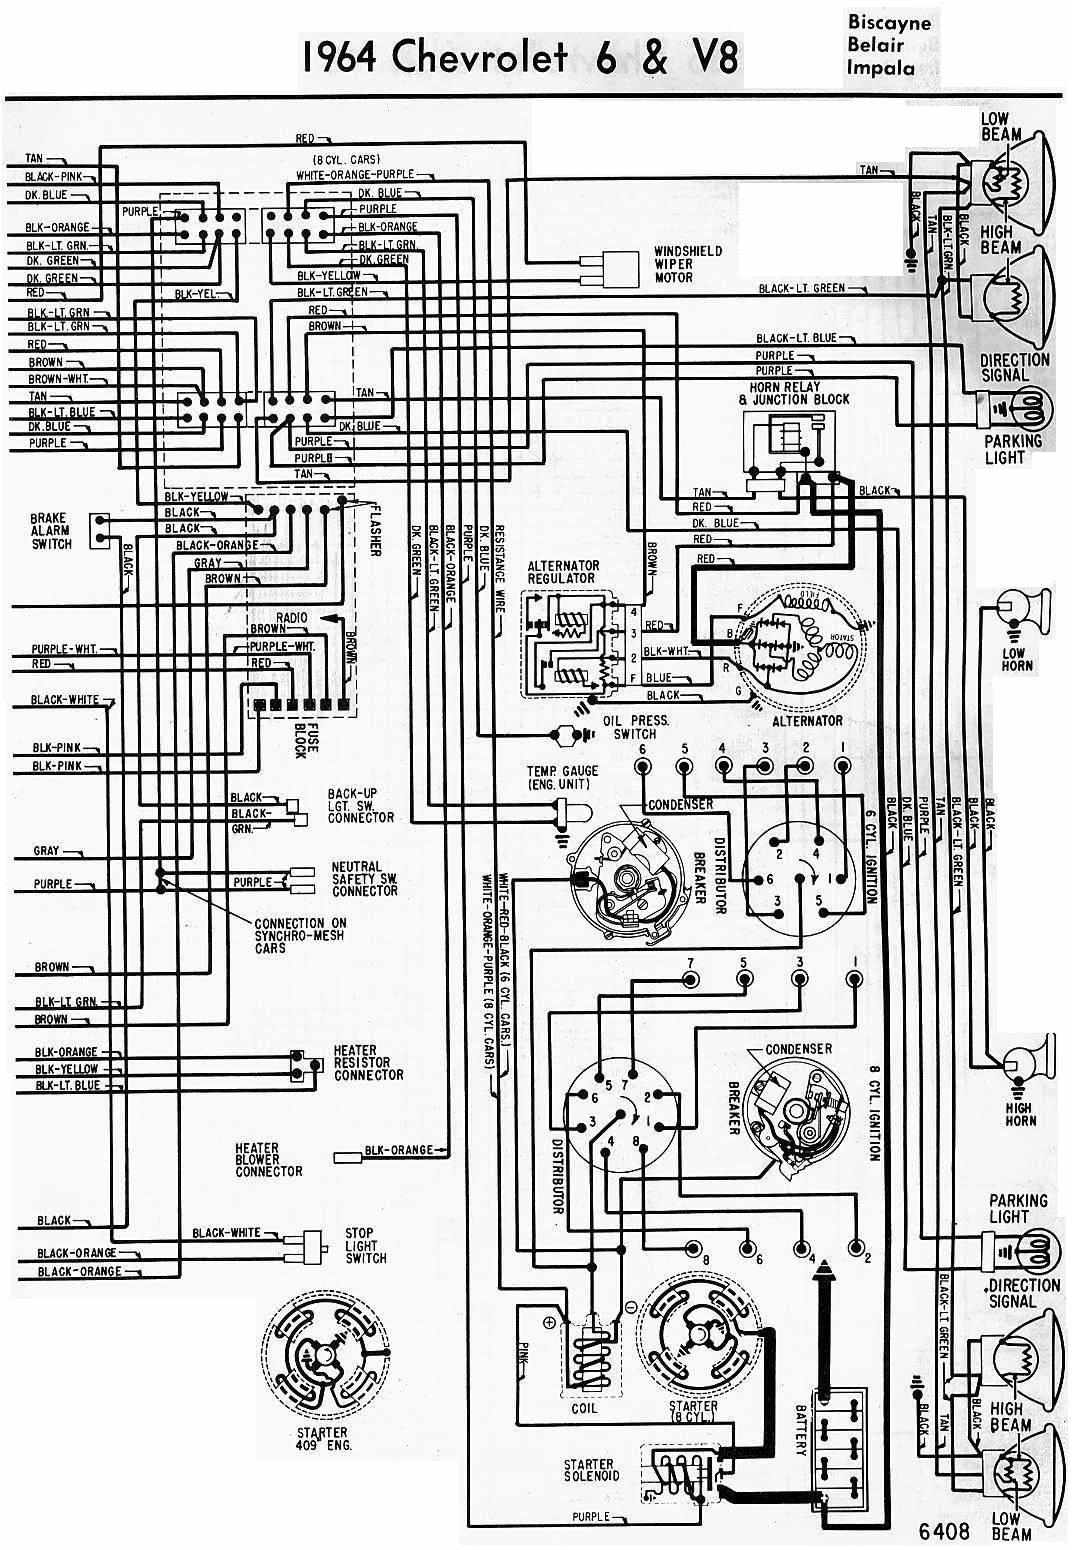 Electrical wiring diagram of chevrolet and all chevrolet ignition switch  wiring diagram ignition jpg 1072x1550 1965